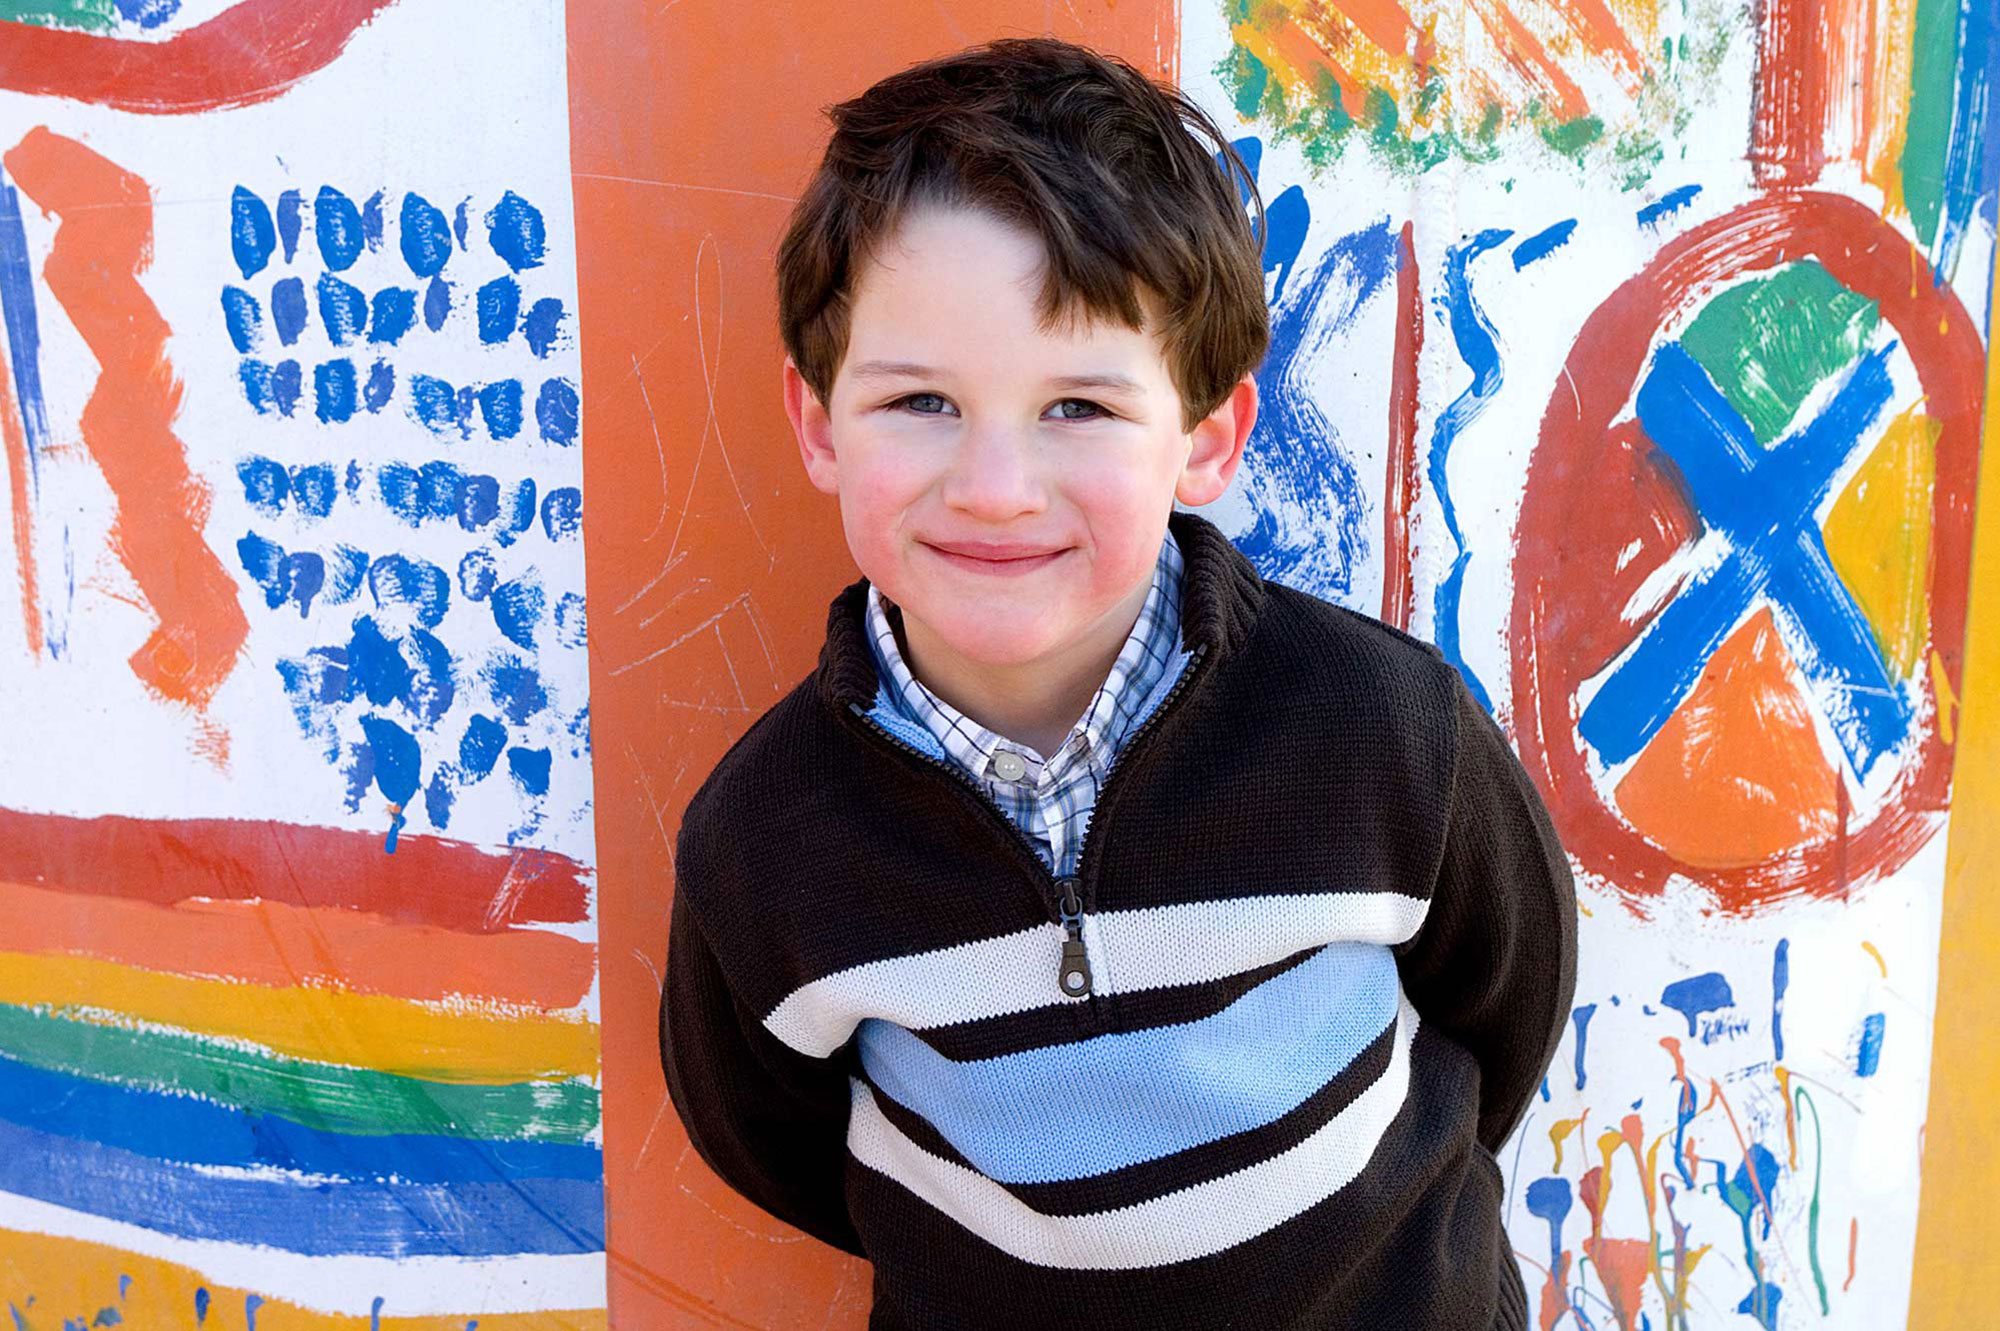 Boy standing a colorful graffiti wall and smiling gently